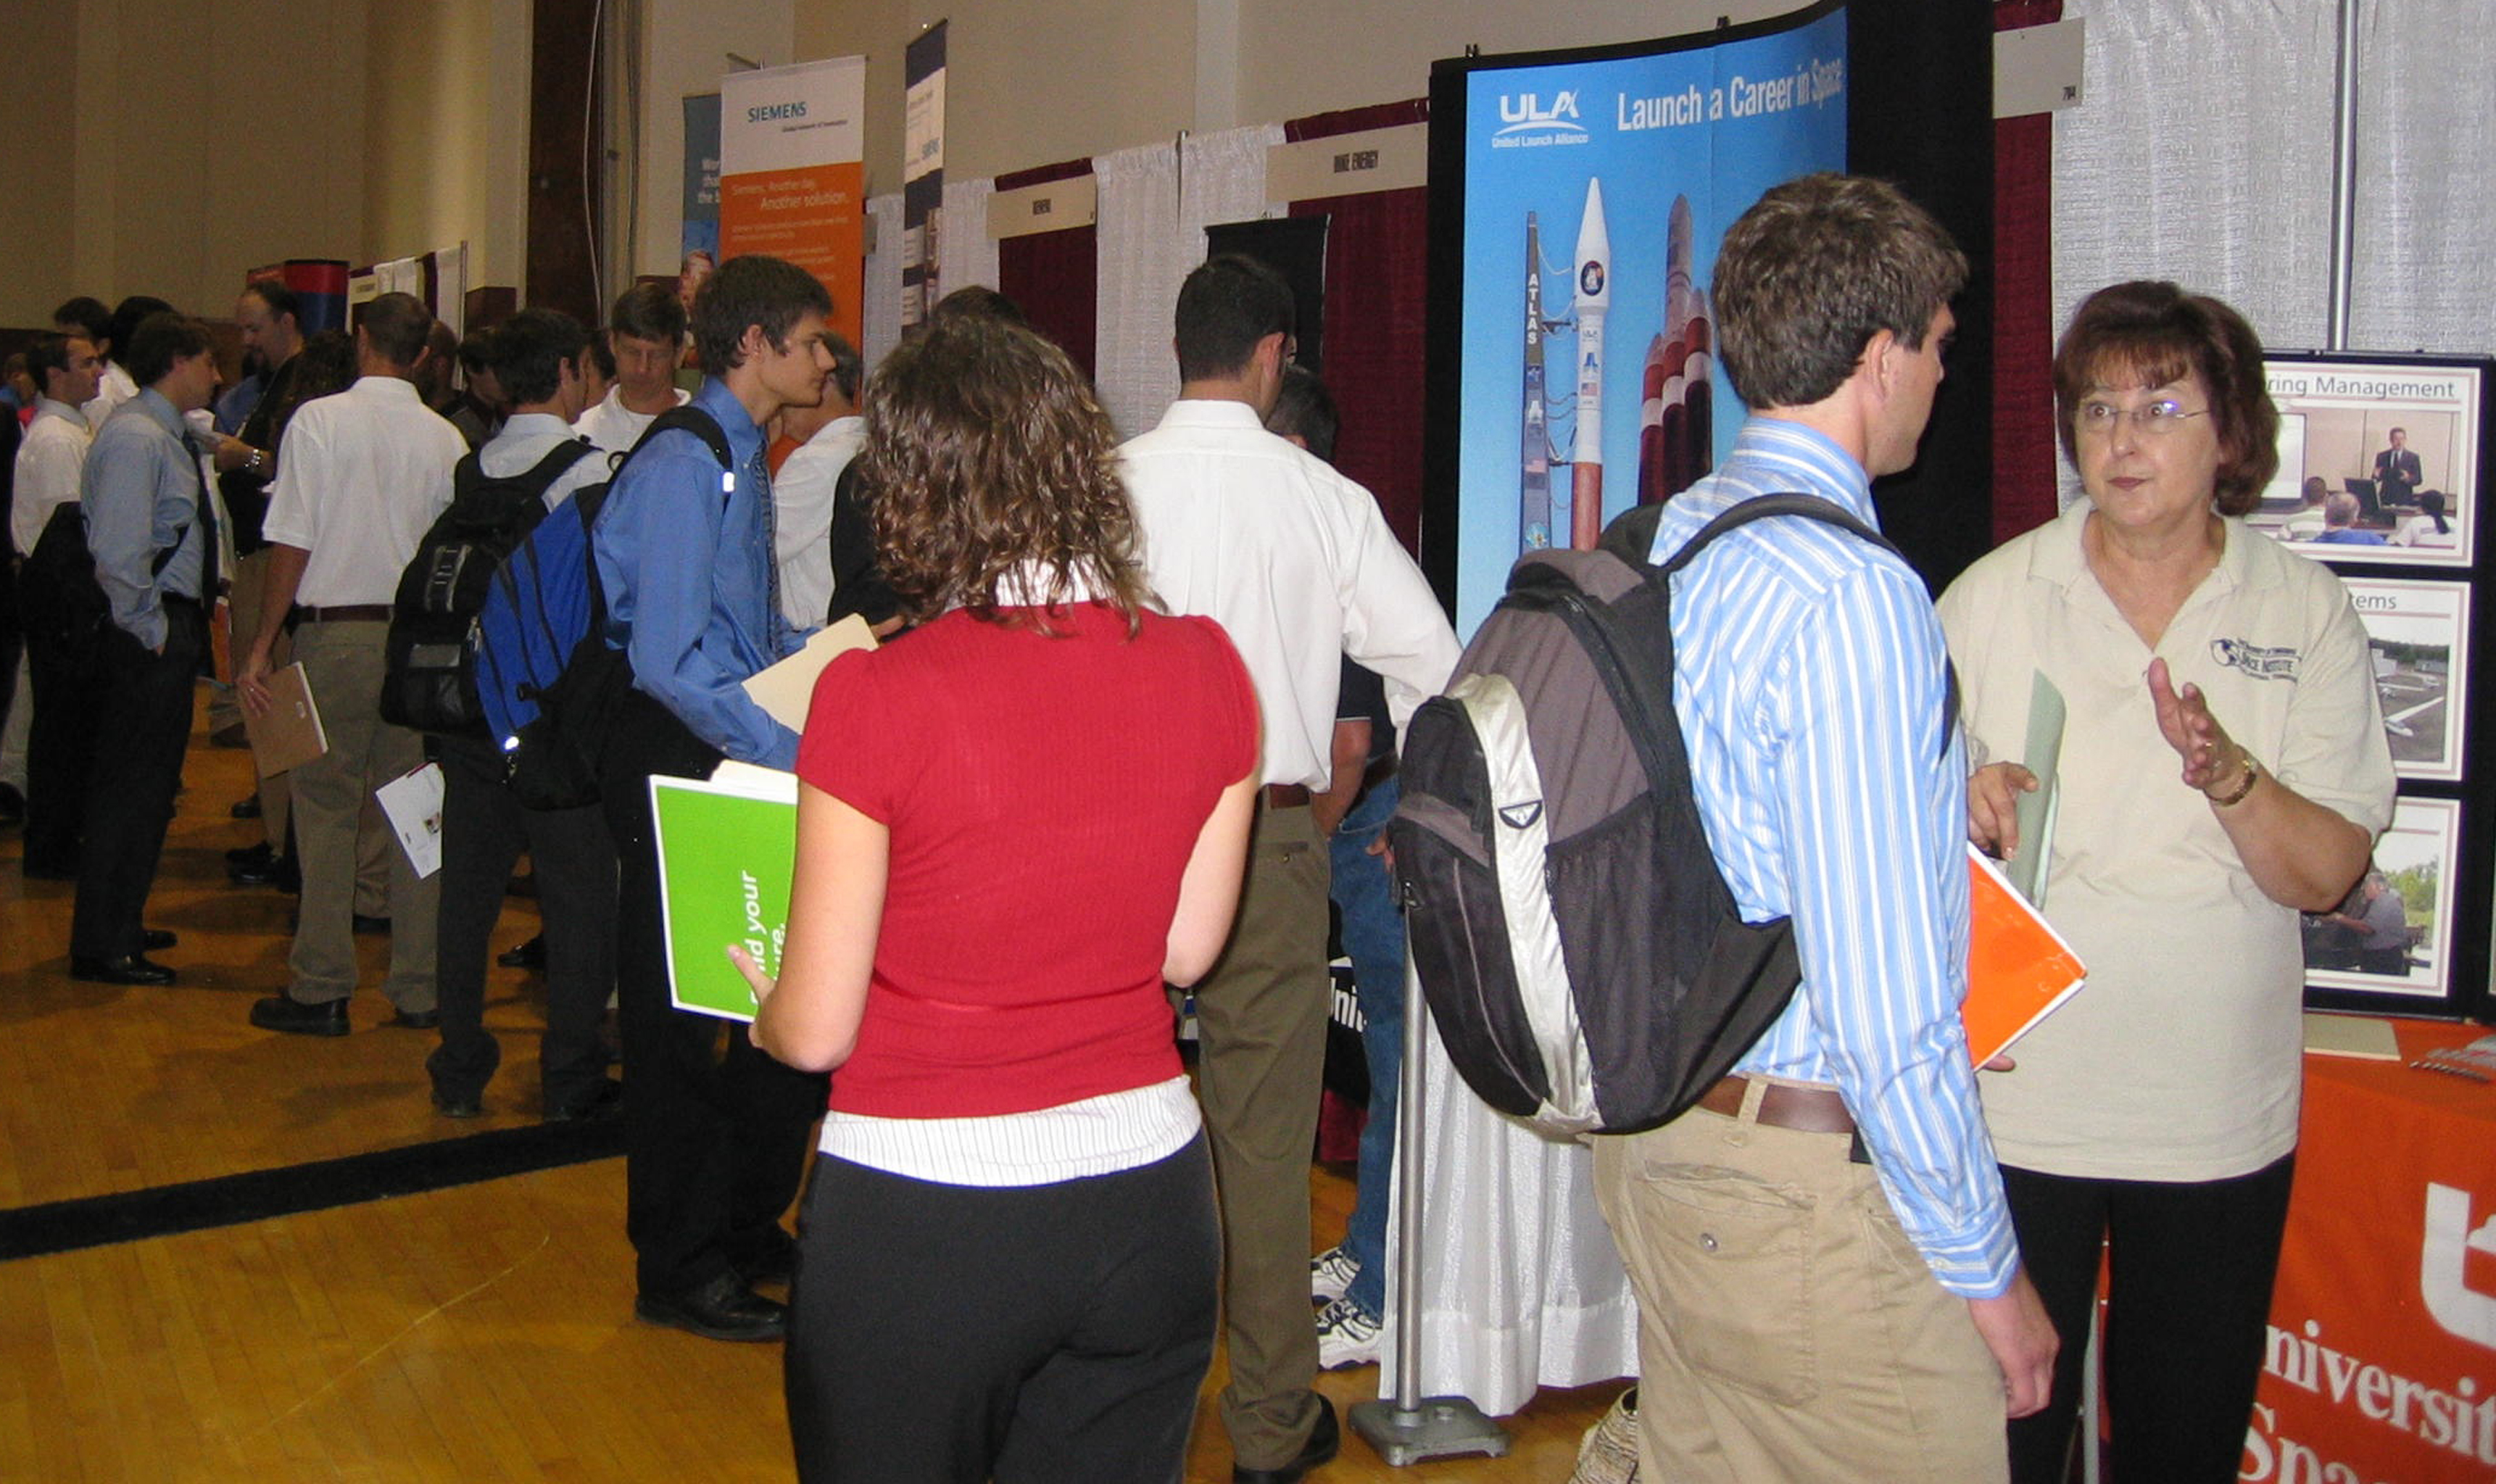 Engineering Expo booths